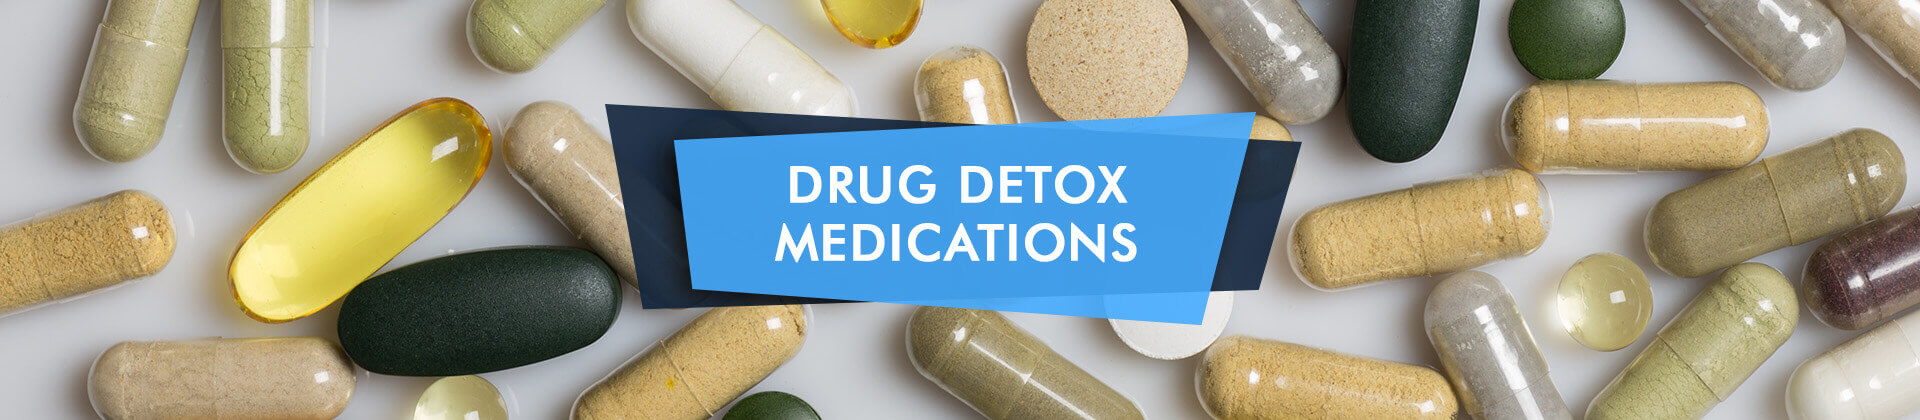 Pills for drug detox